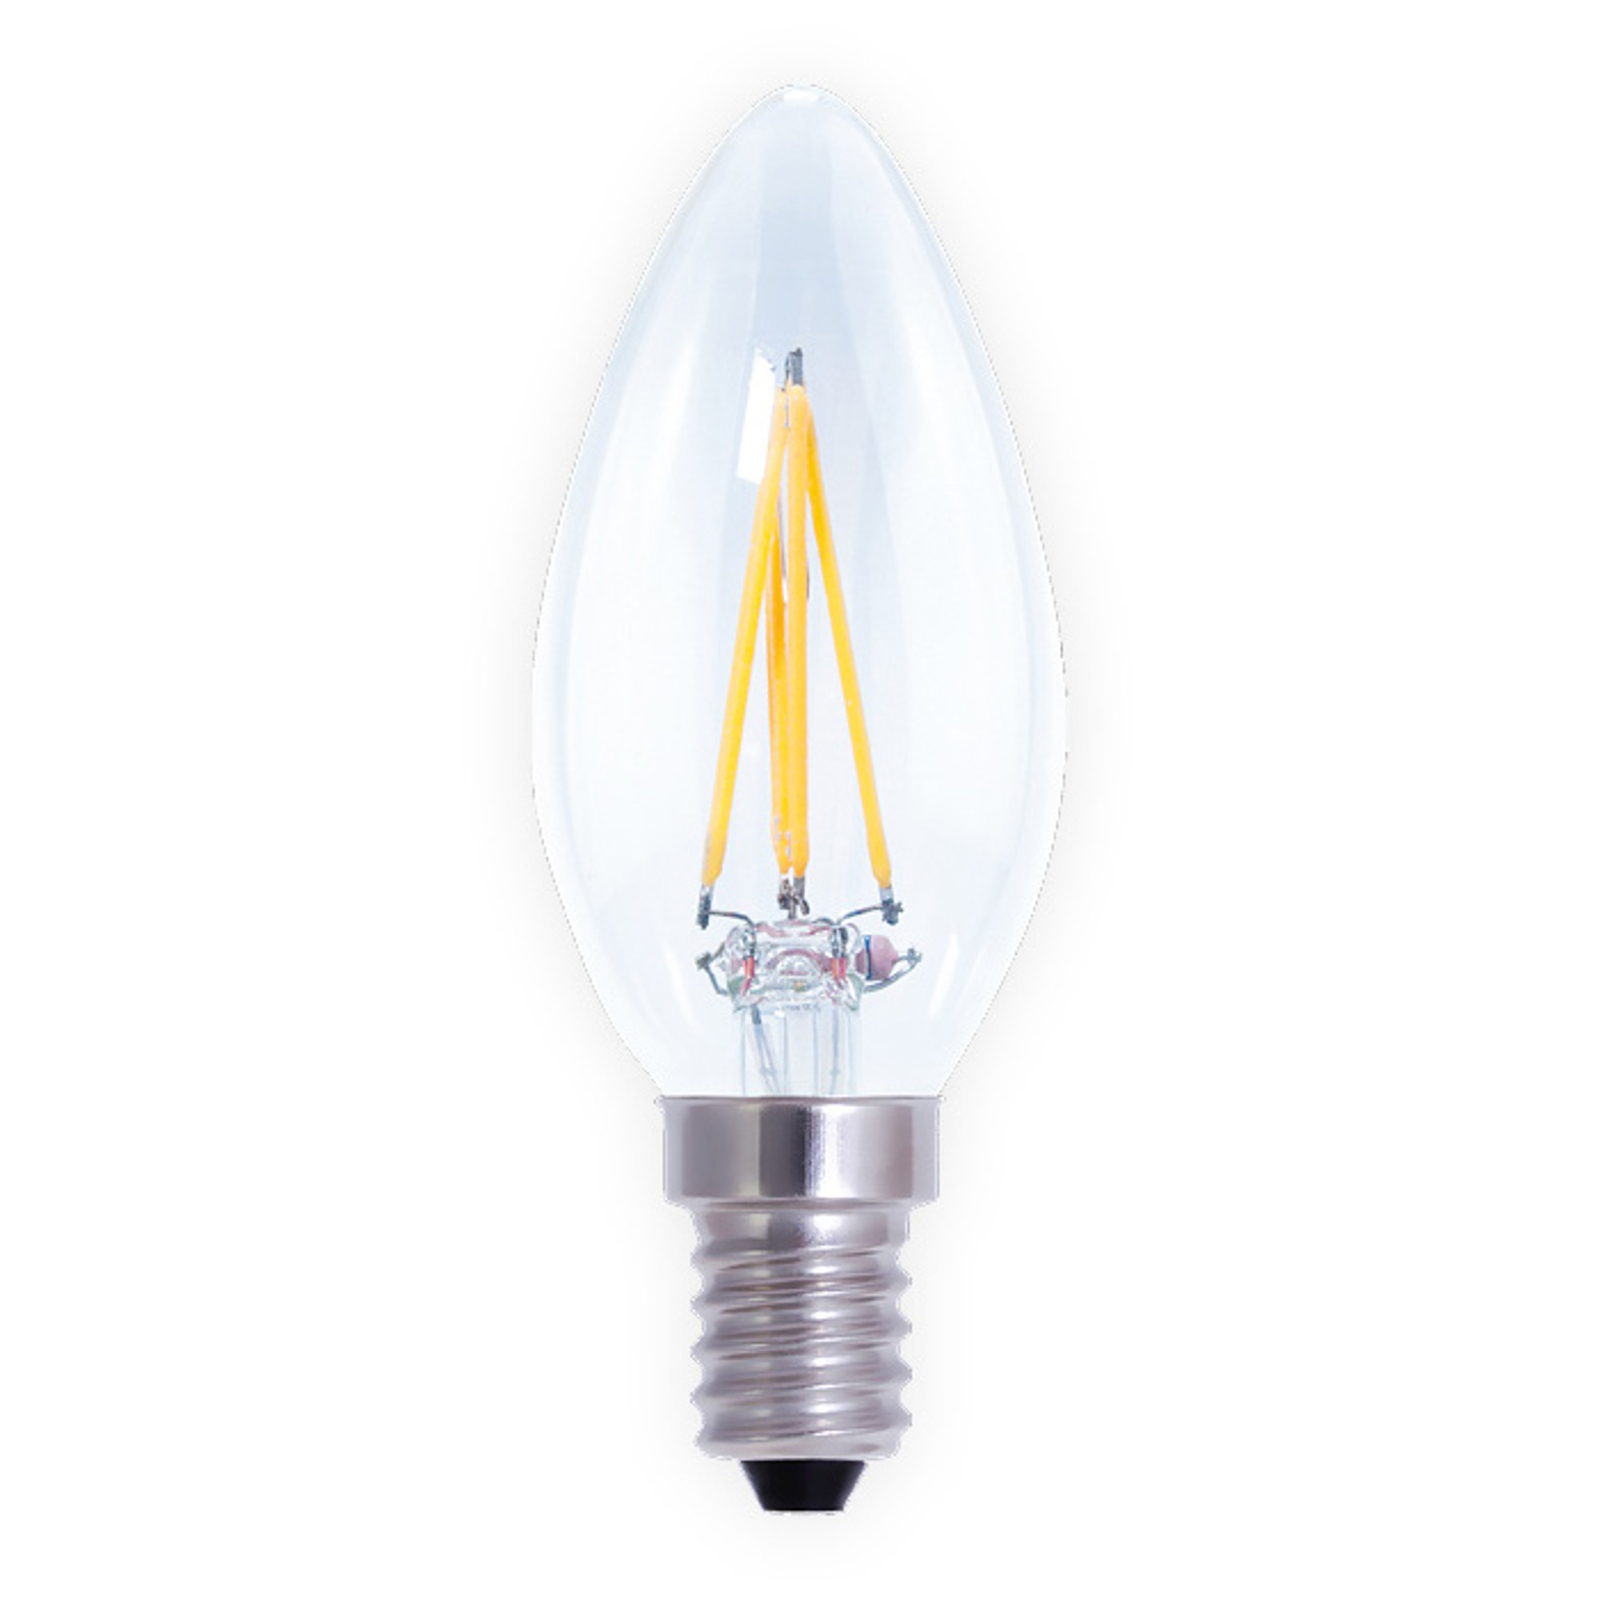 Ampoule flamme LED E14 4W, variable